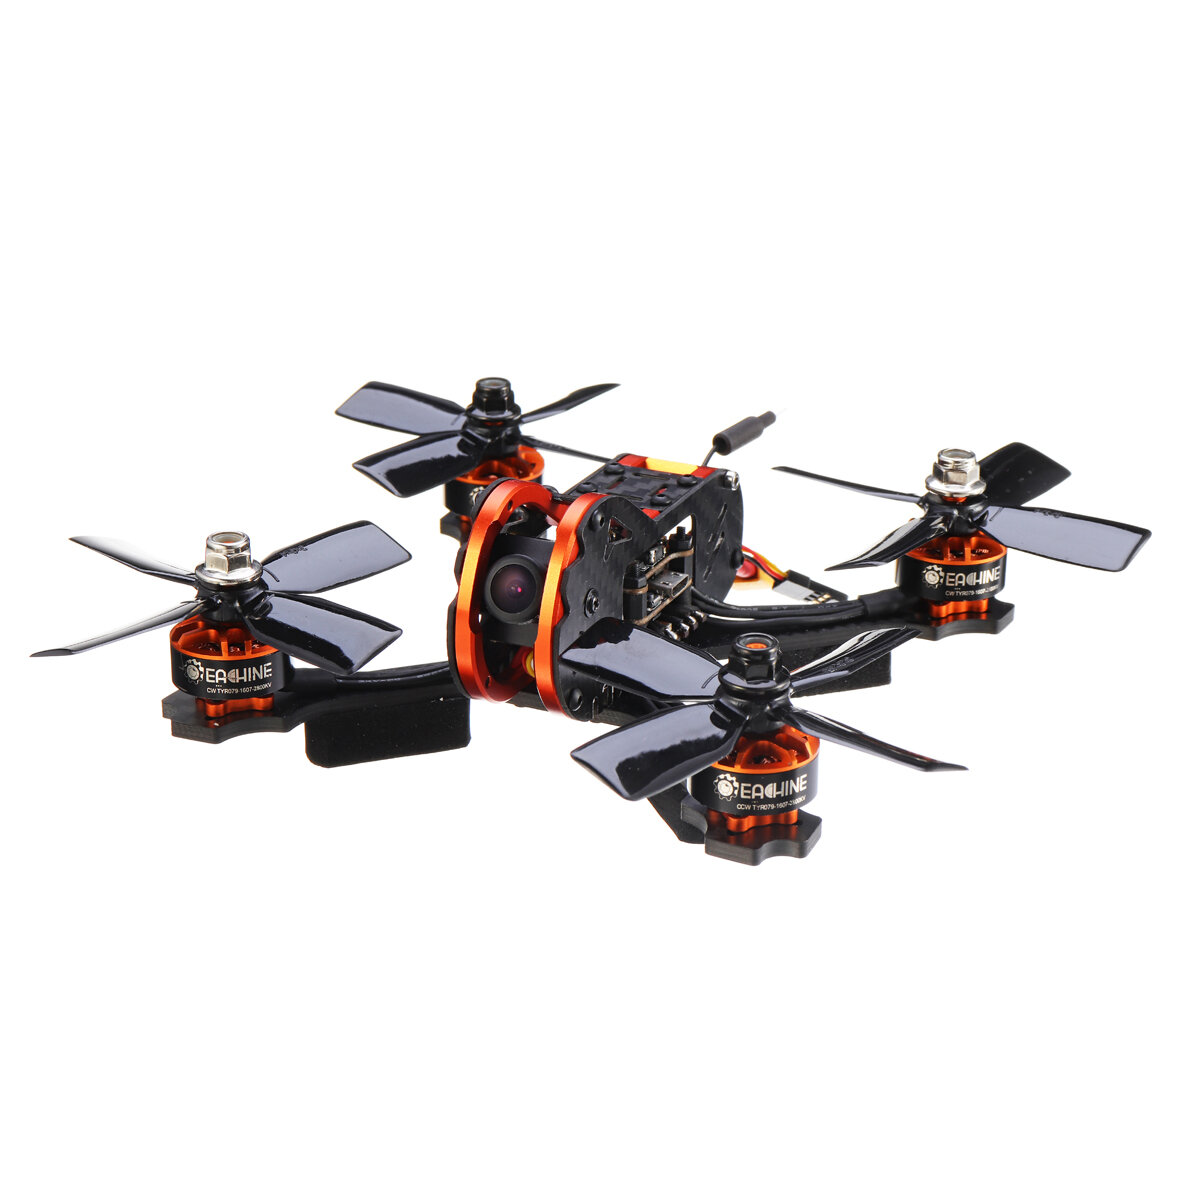 Eachine Tyro79 140mm 3 Inch DIY Version FPV Racing RC Drone F4 OSD 20A BLHeli_S 40CH 200mW 700TVL